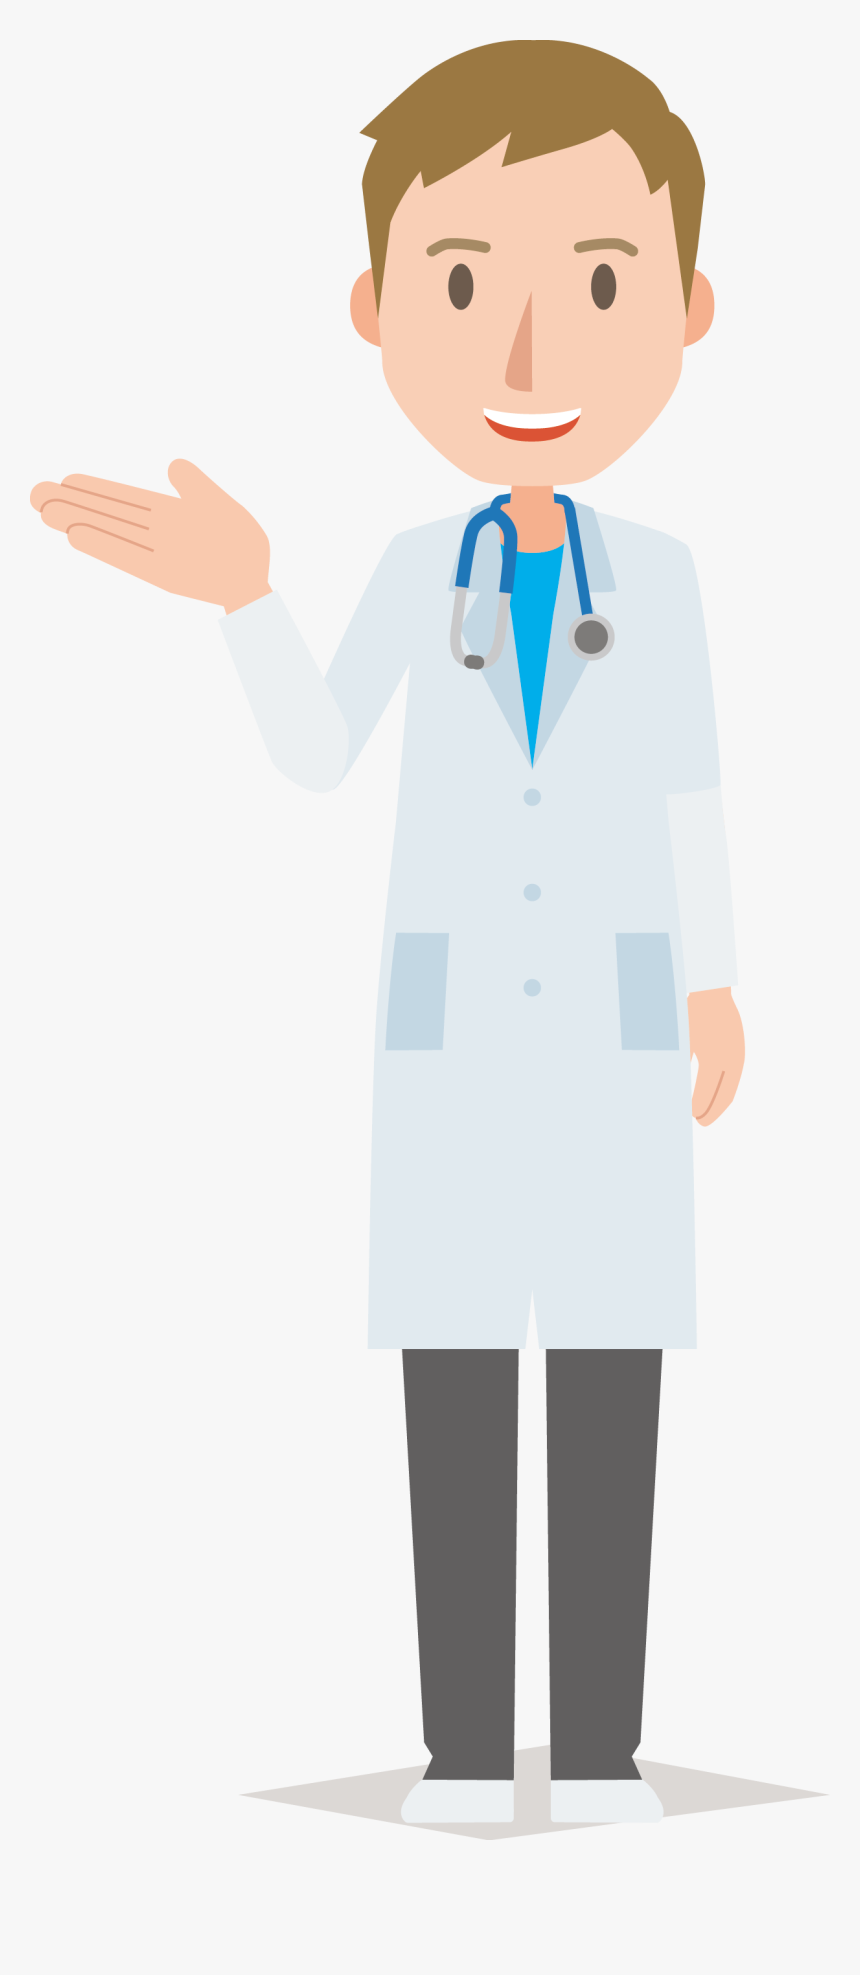 Newborn Doctor Physician Cartoon - Doctor Cartoon Transparent Background, HD Png Download, Free Download